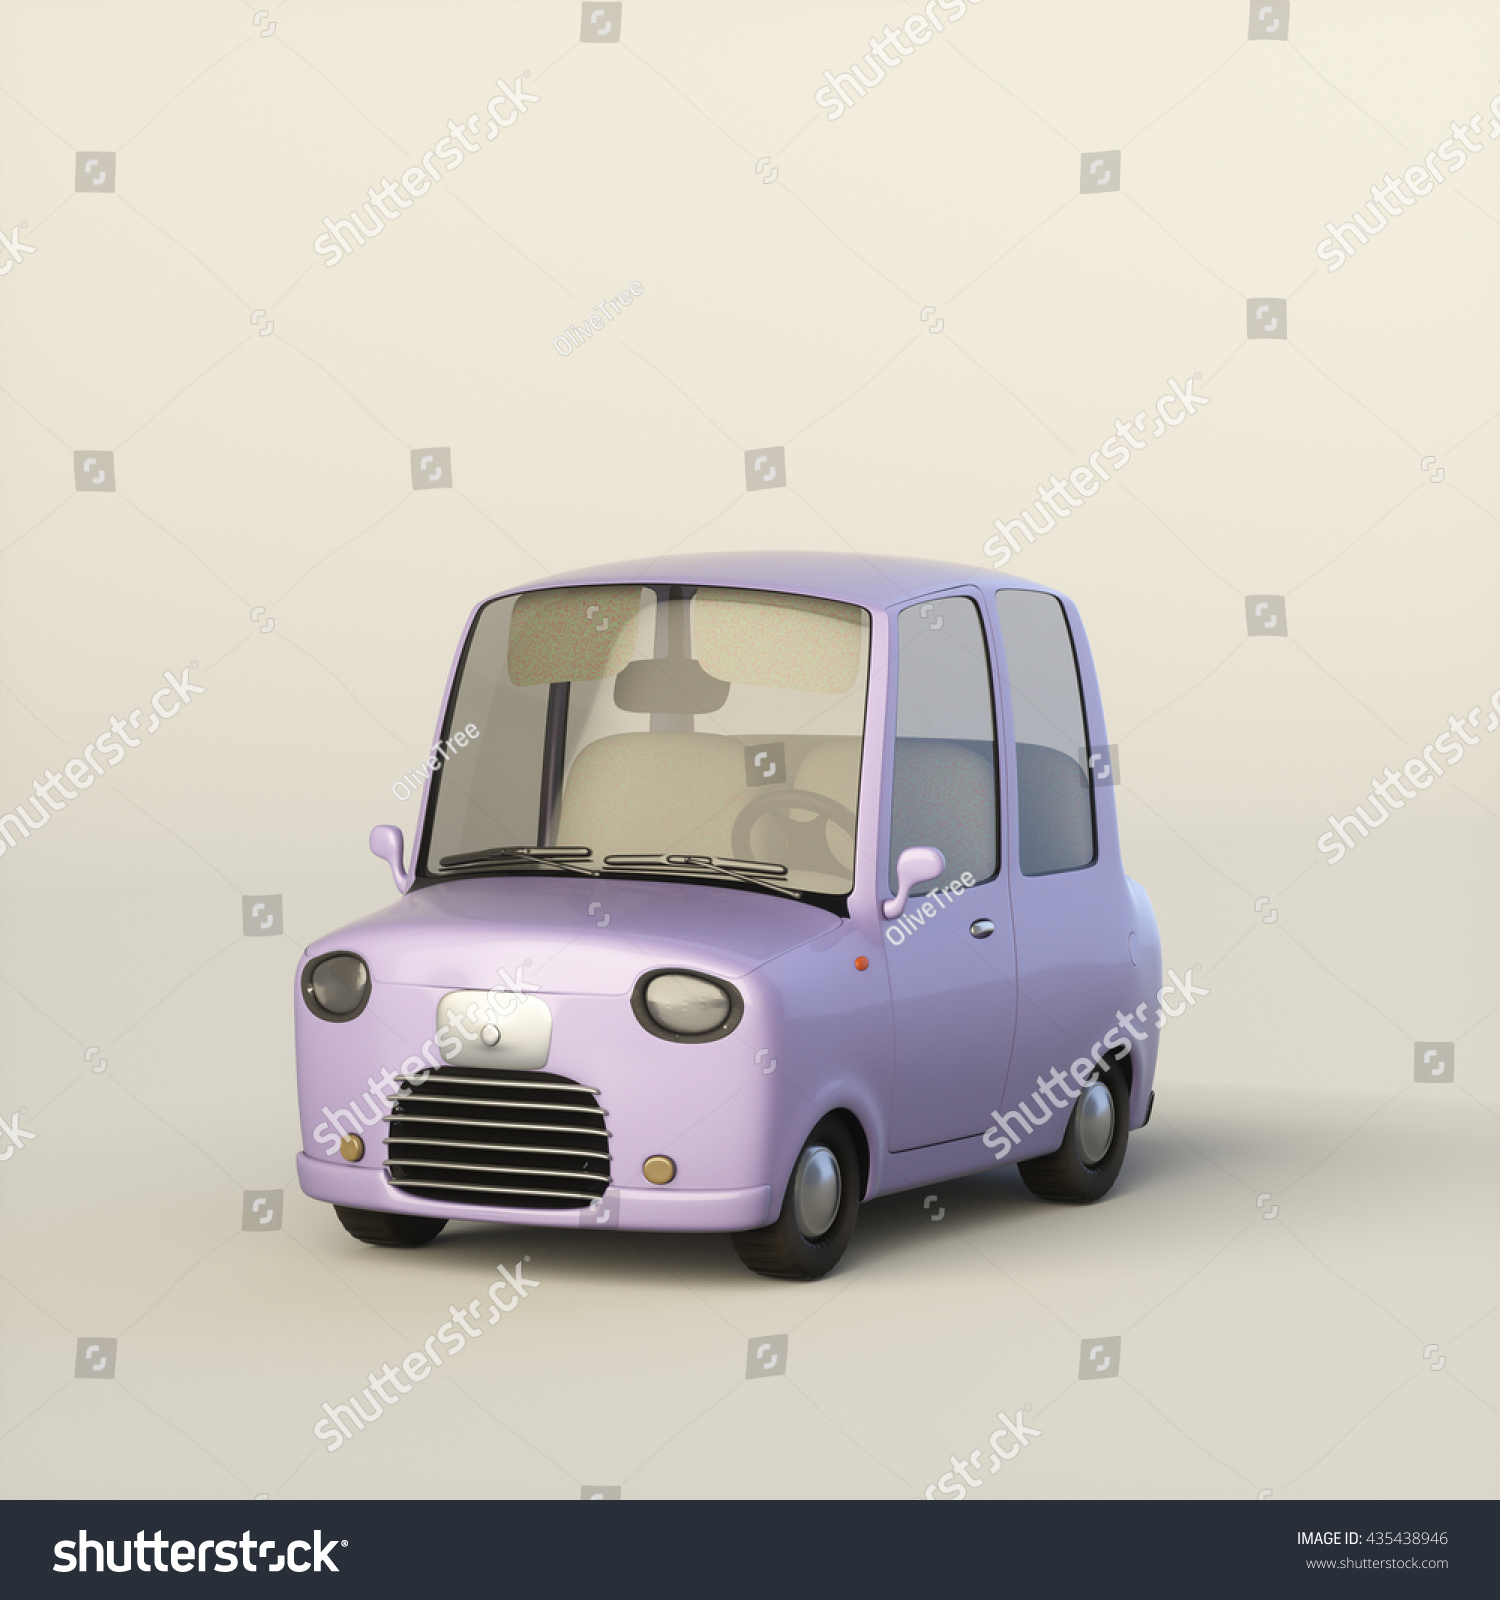 Cute Cartoon Stylized Car Lilac Color Stock Illustration 435438946